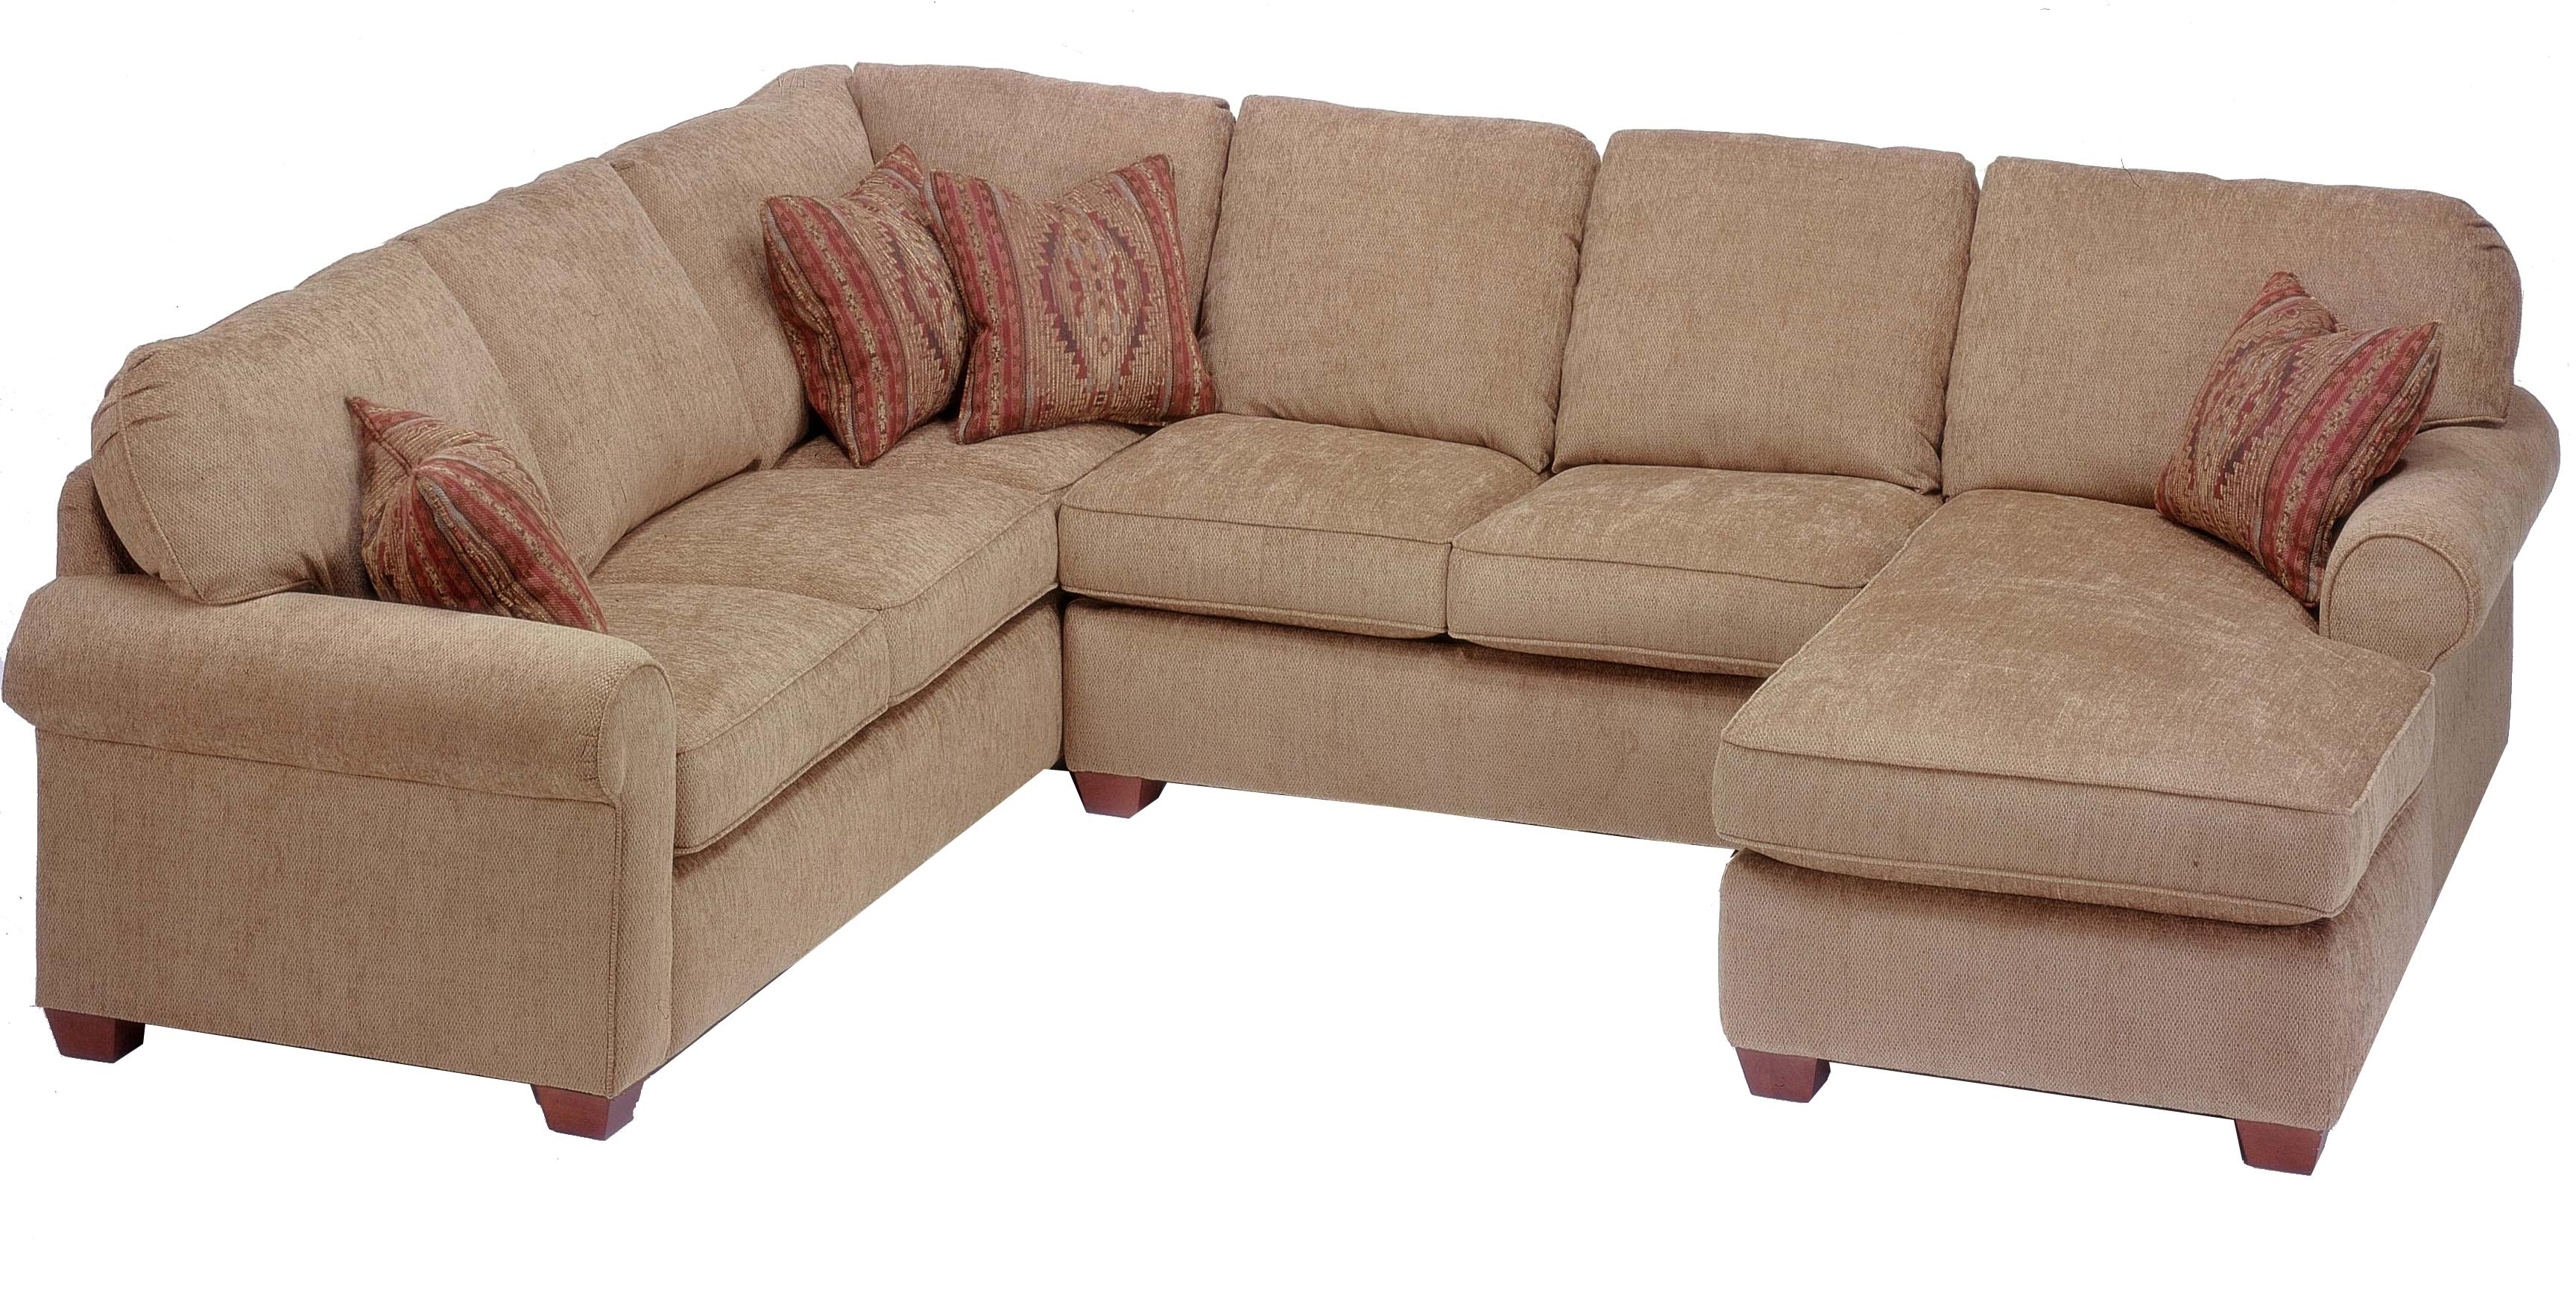 Flexsteel Thornton 3 Piece Sectional With Chaise – Ahfa – Sofa Pertaining To Newest Hickory Nc Sectional Sofas (View 2 of 20)